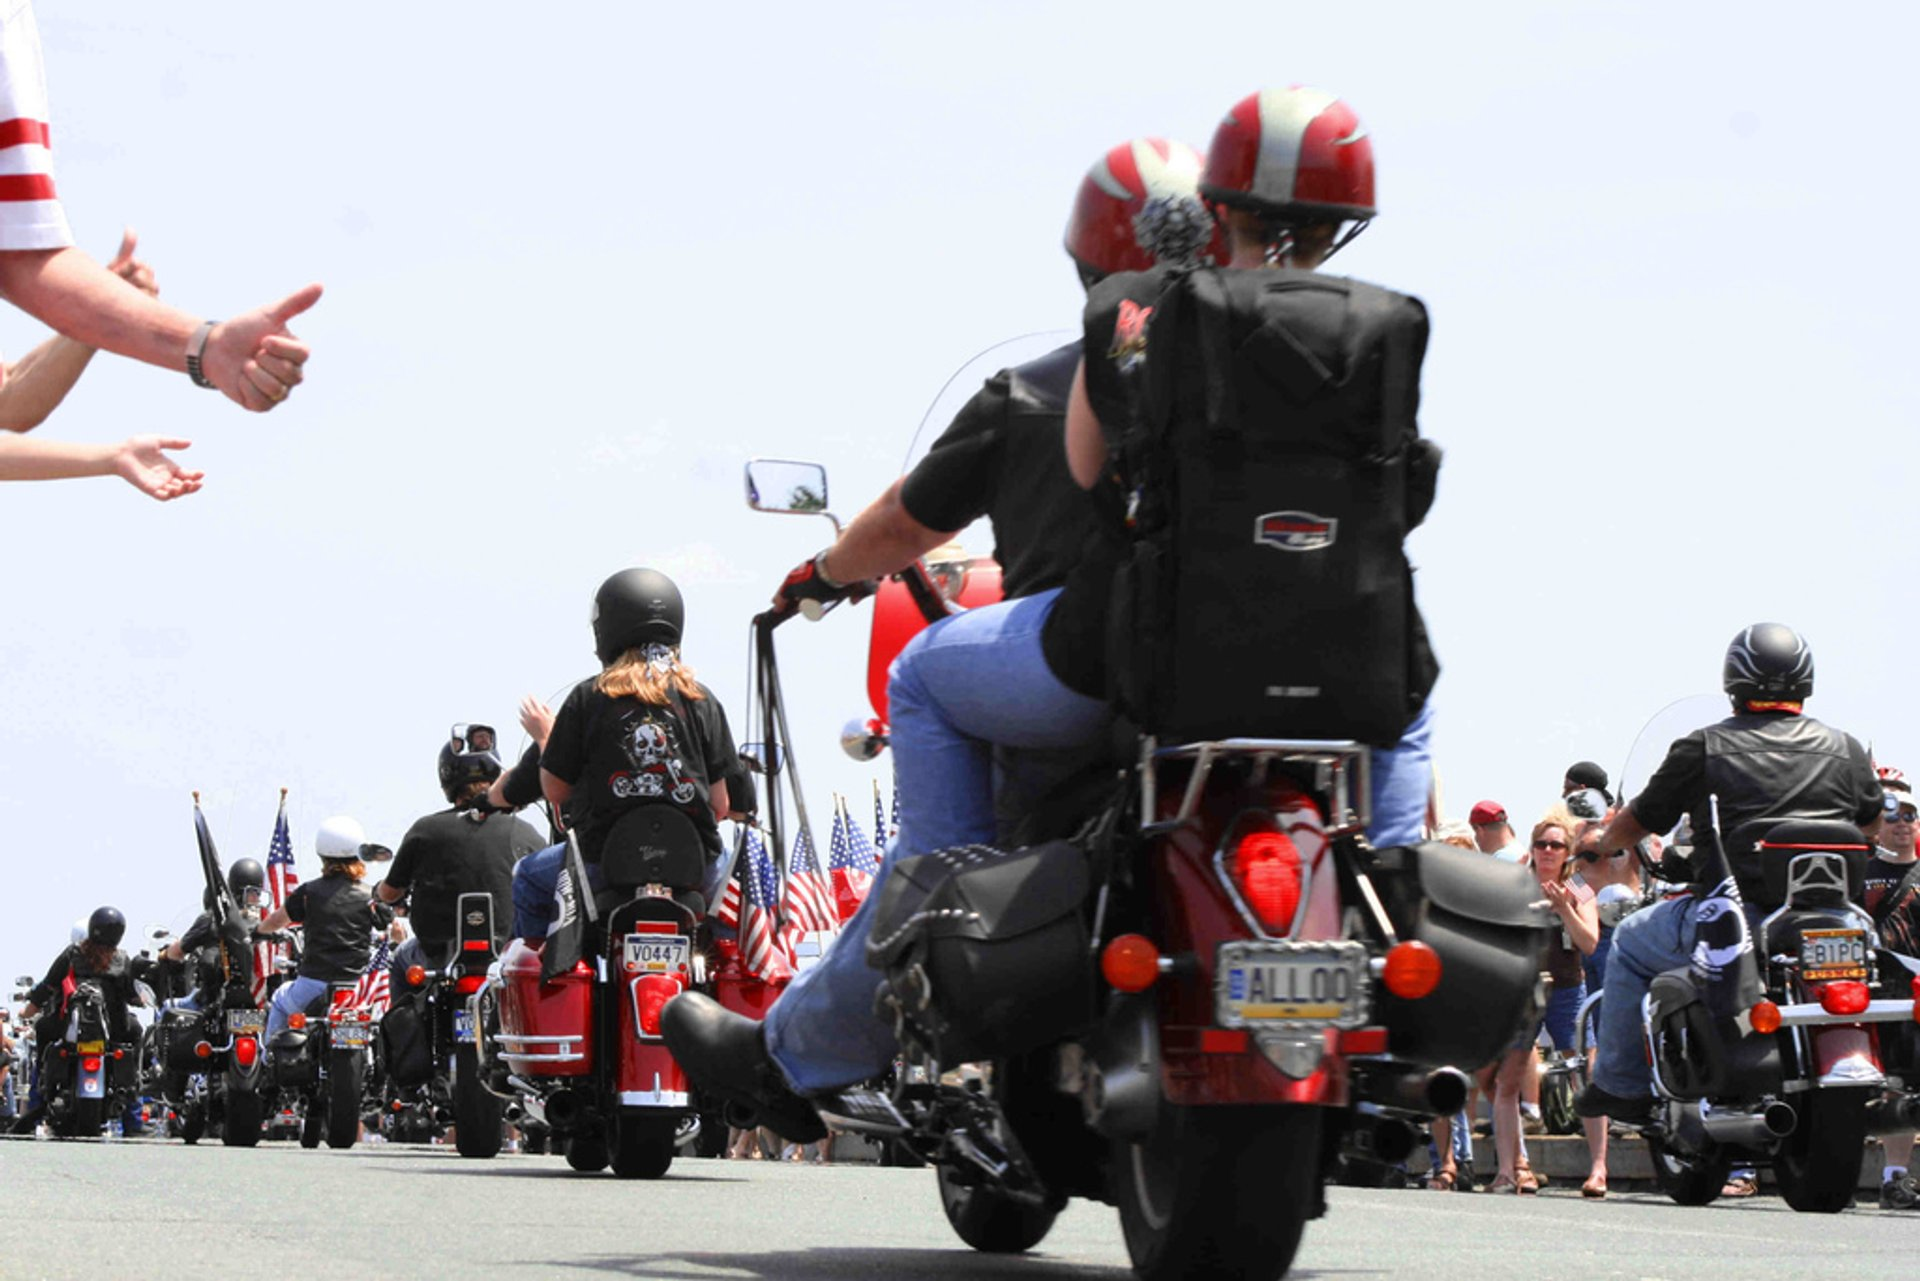 Best time to see Rolling Thunder 'Ride for Freedom' in Washington, D.C. 2020